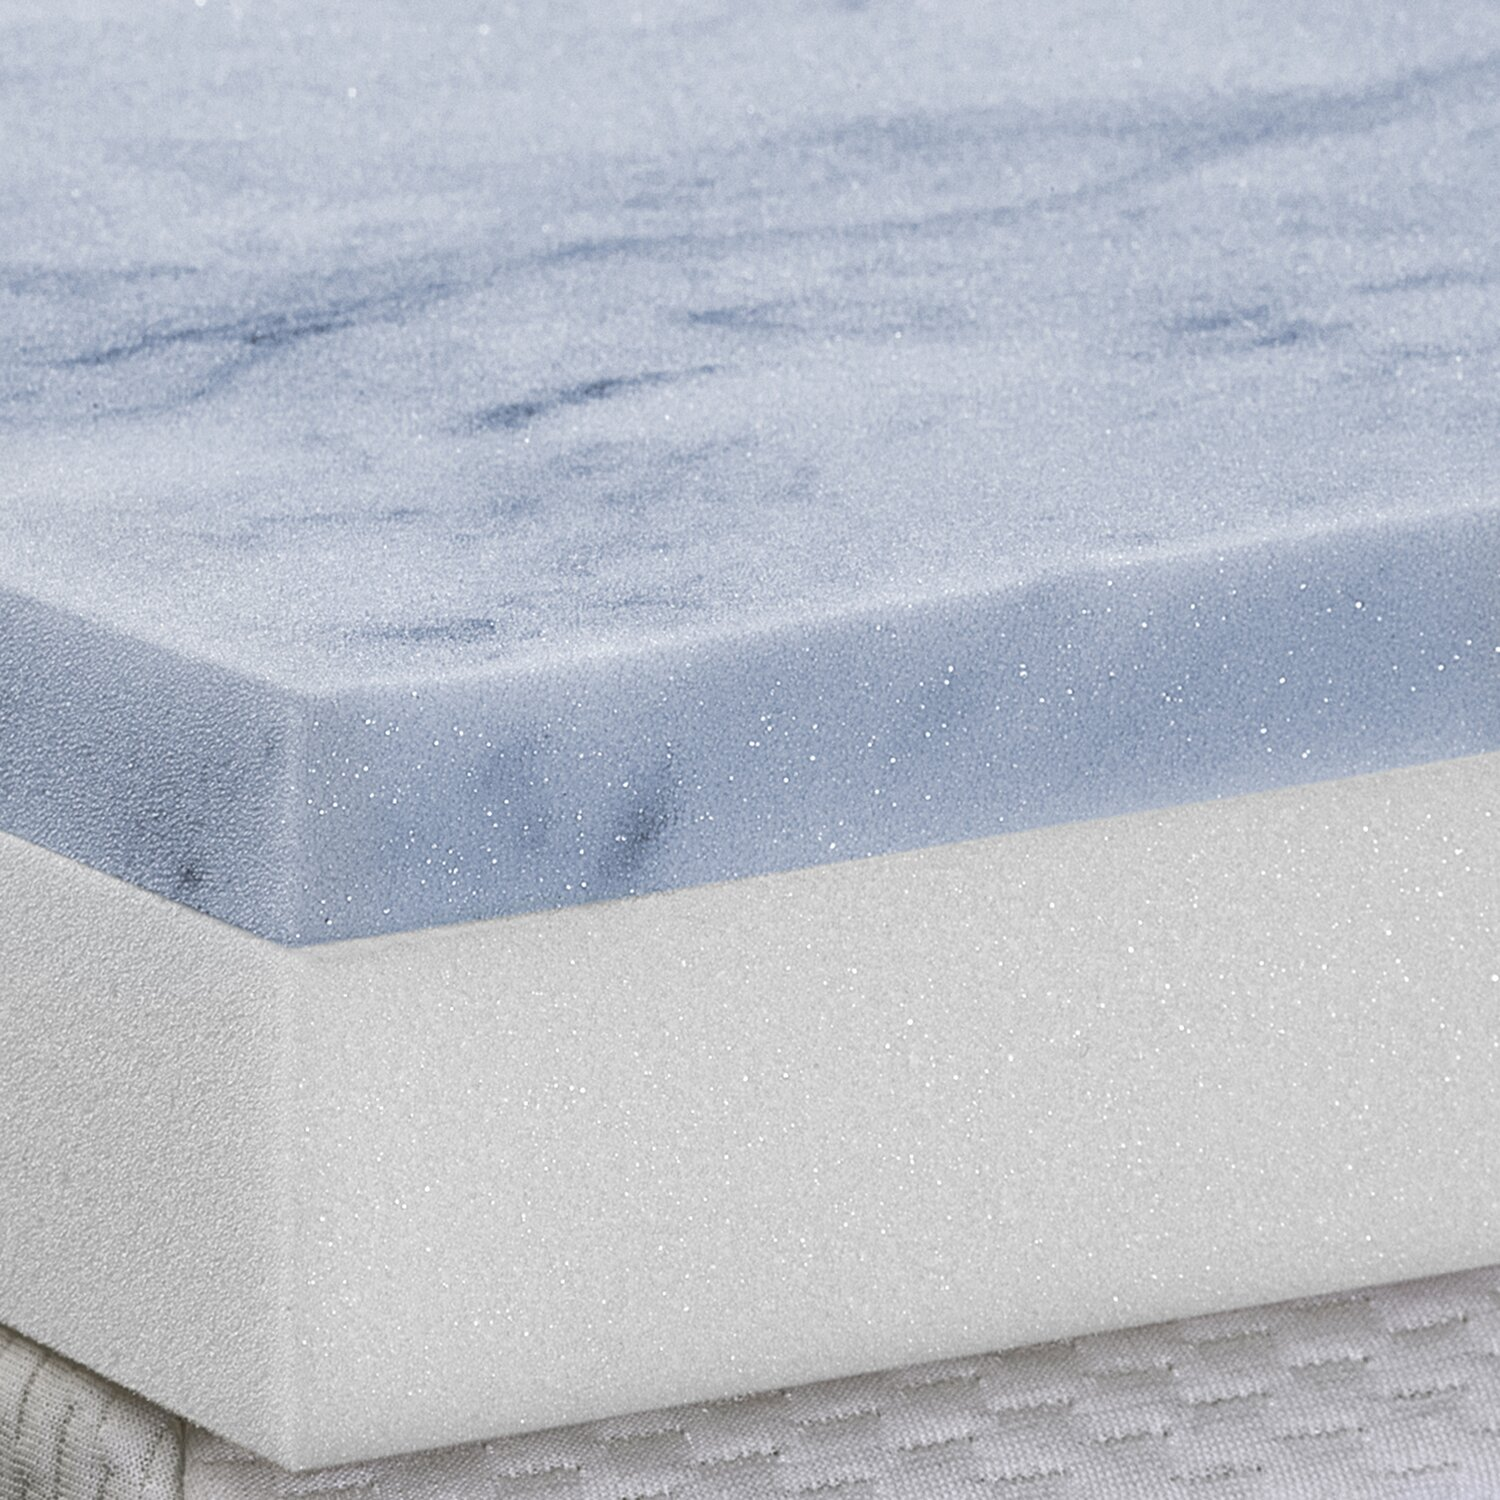 Low Price Continental Sleep Mattress,9-Inch Cool Gel High Density Memory Foam Orthopedic Mattress With Removable Cover,...